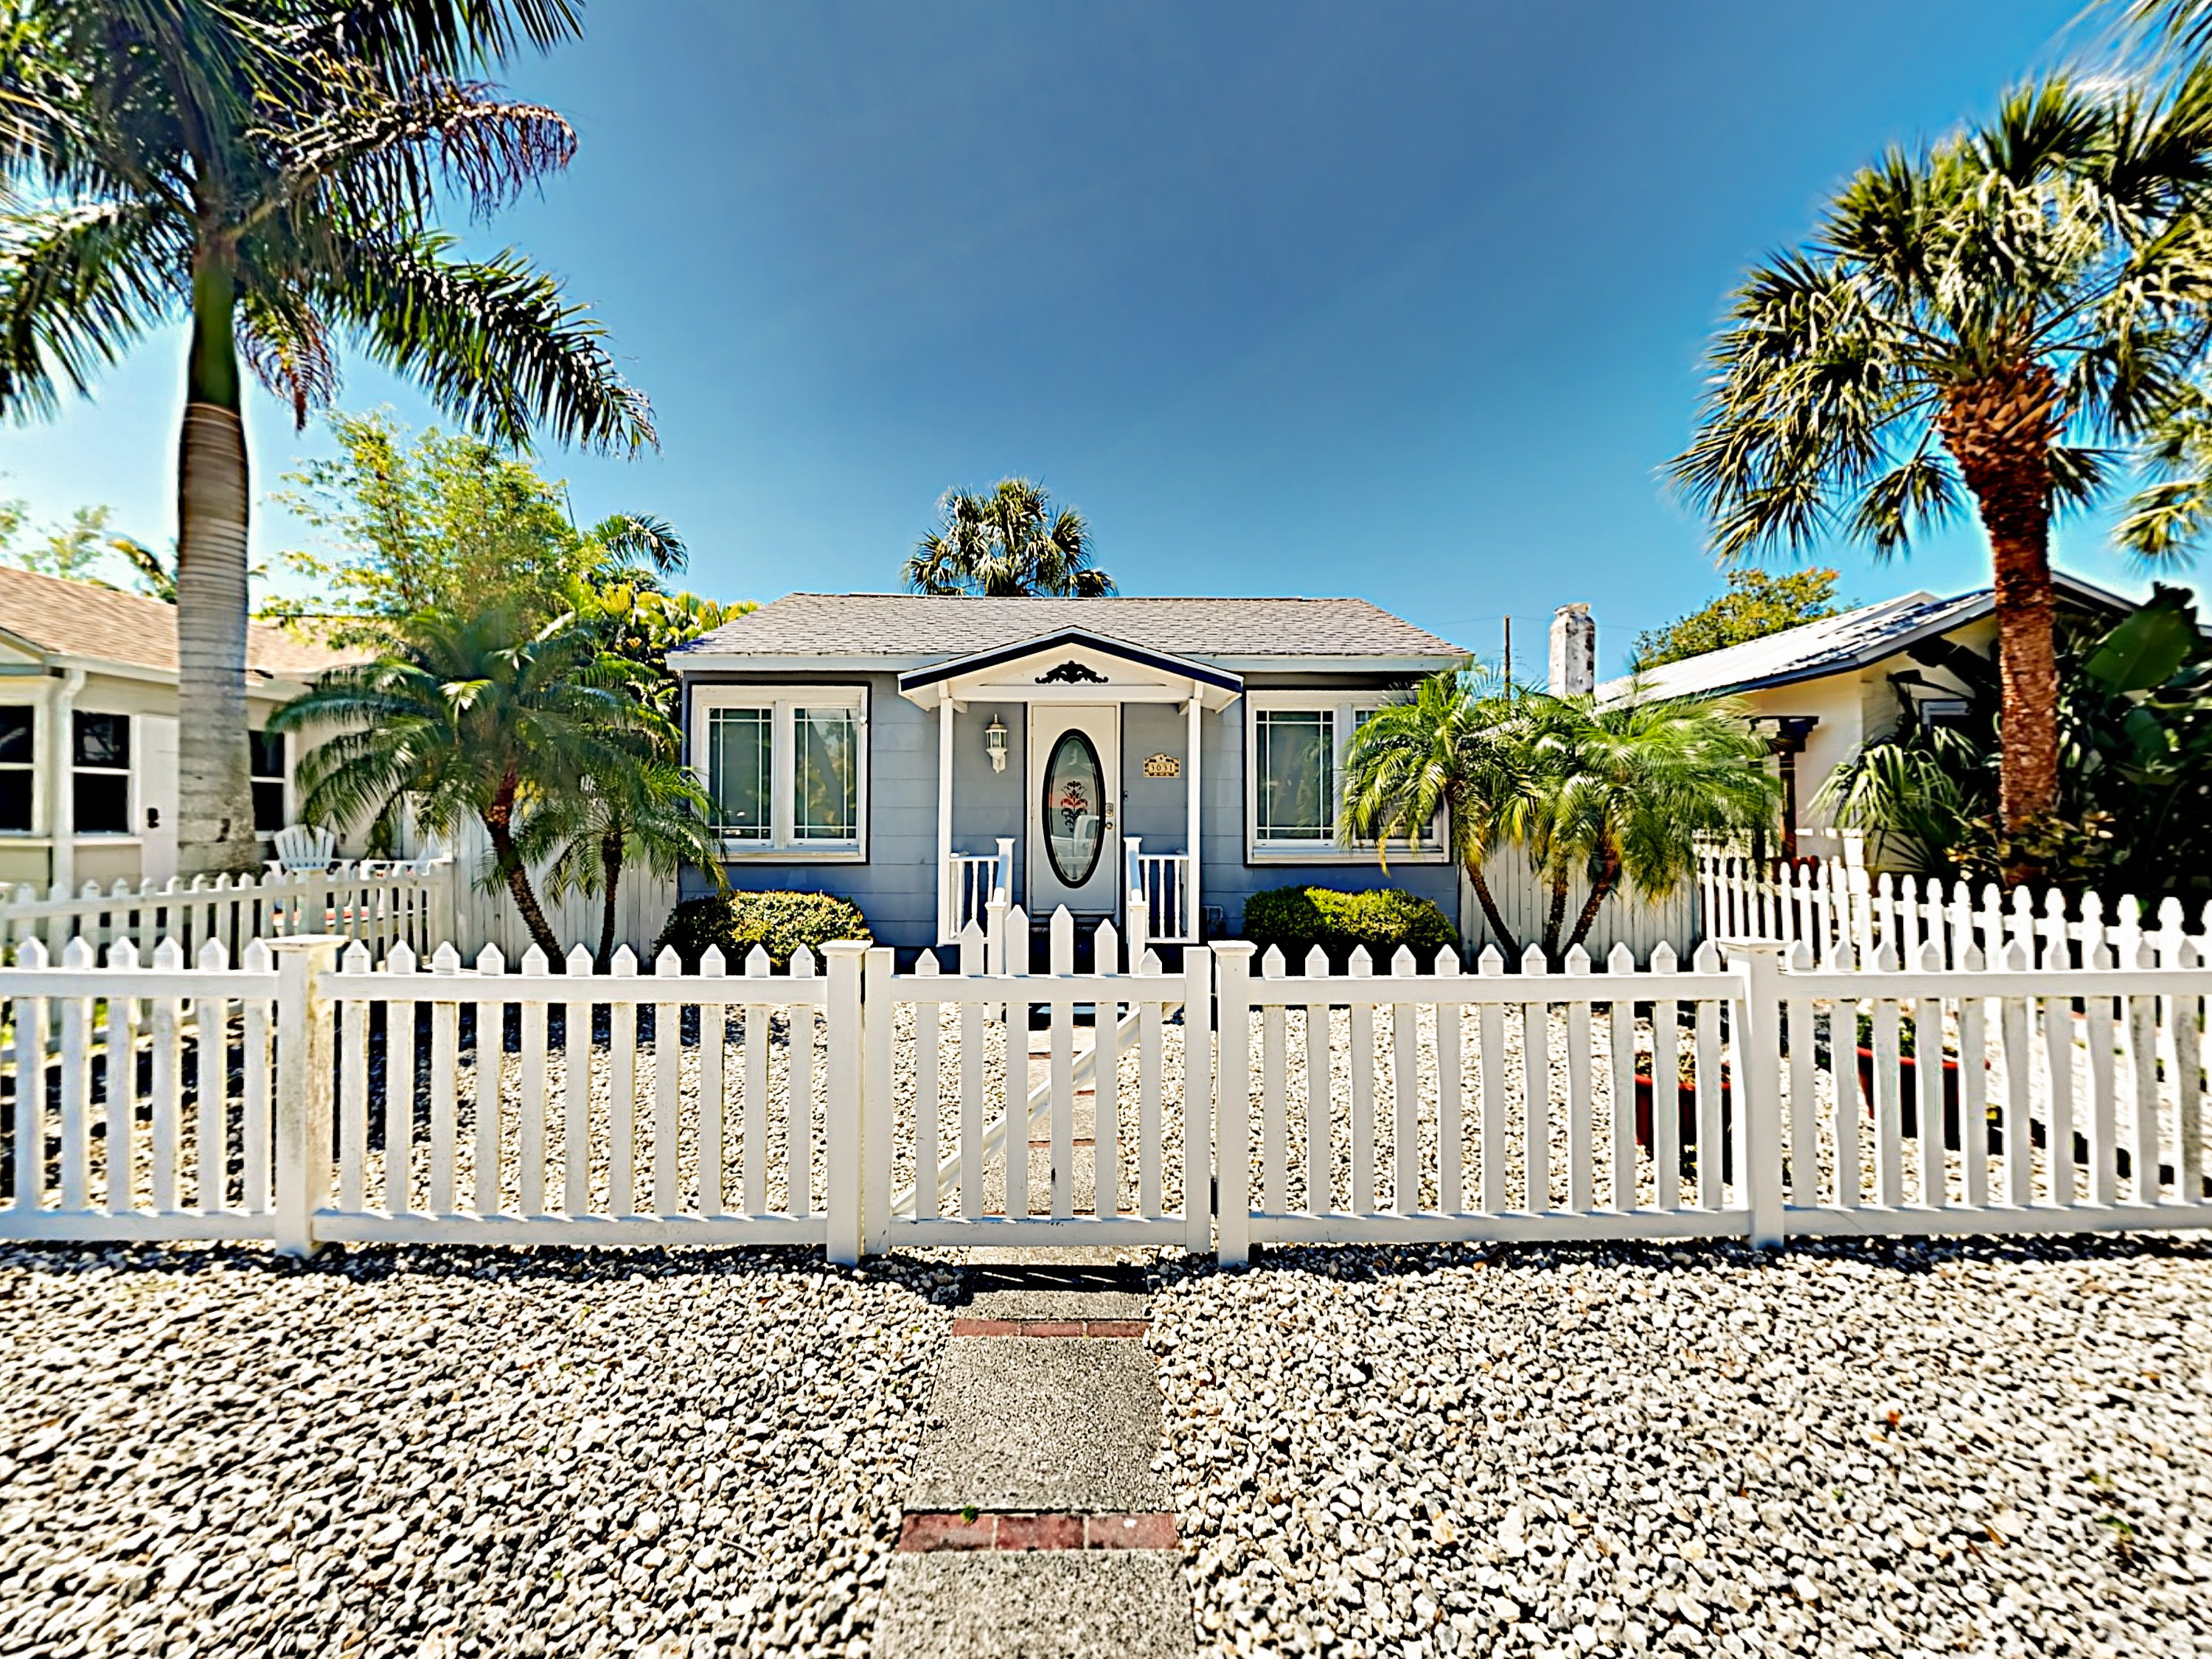 Gulfport FL Vacation Rental Welcome to Gulfport,